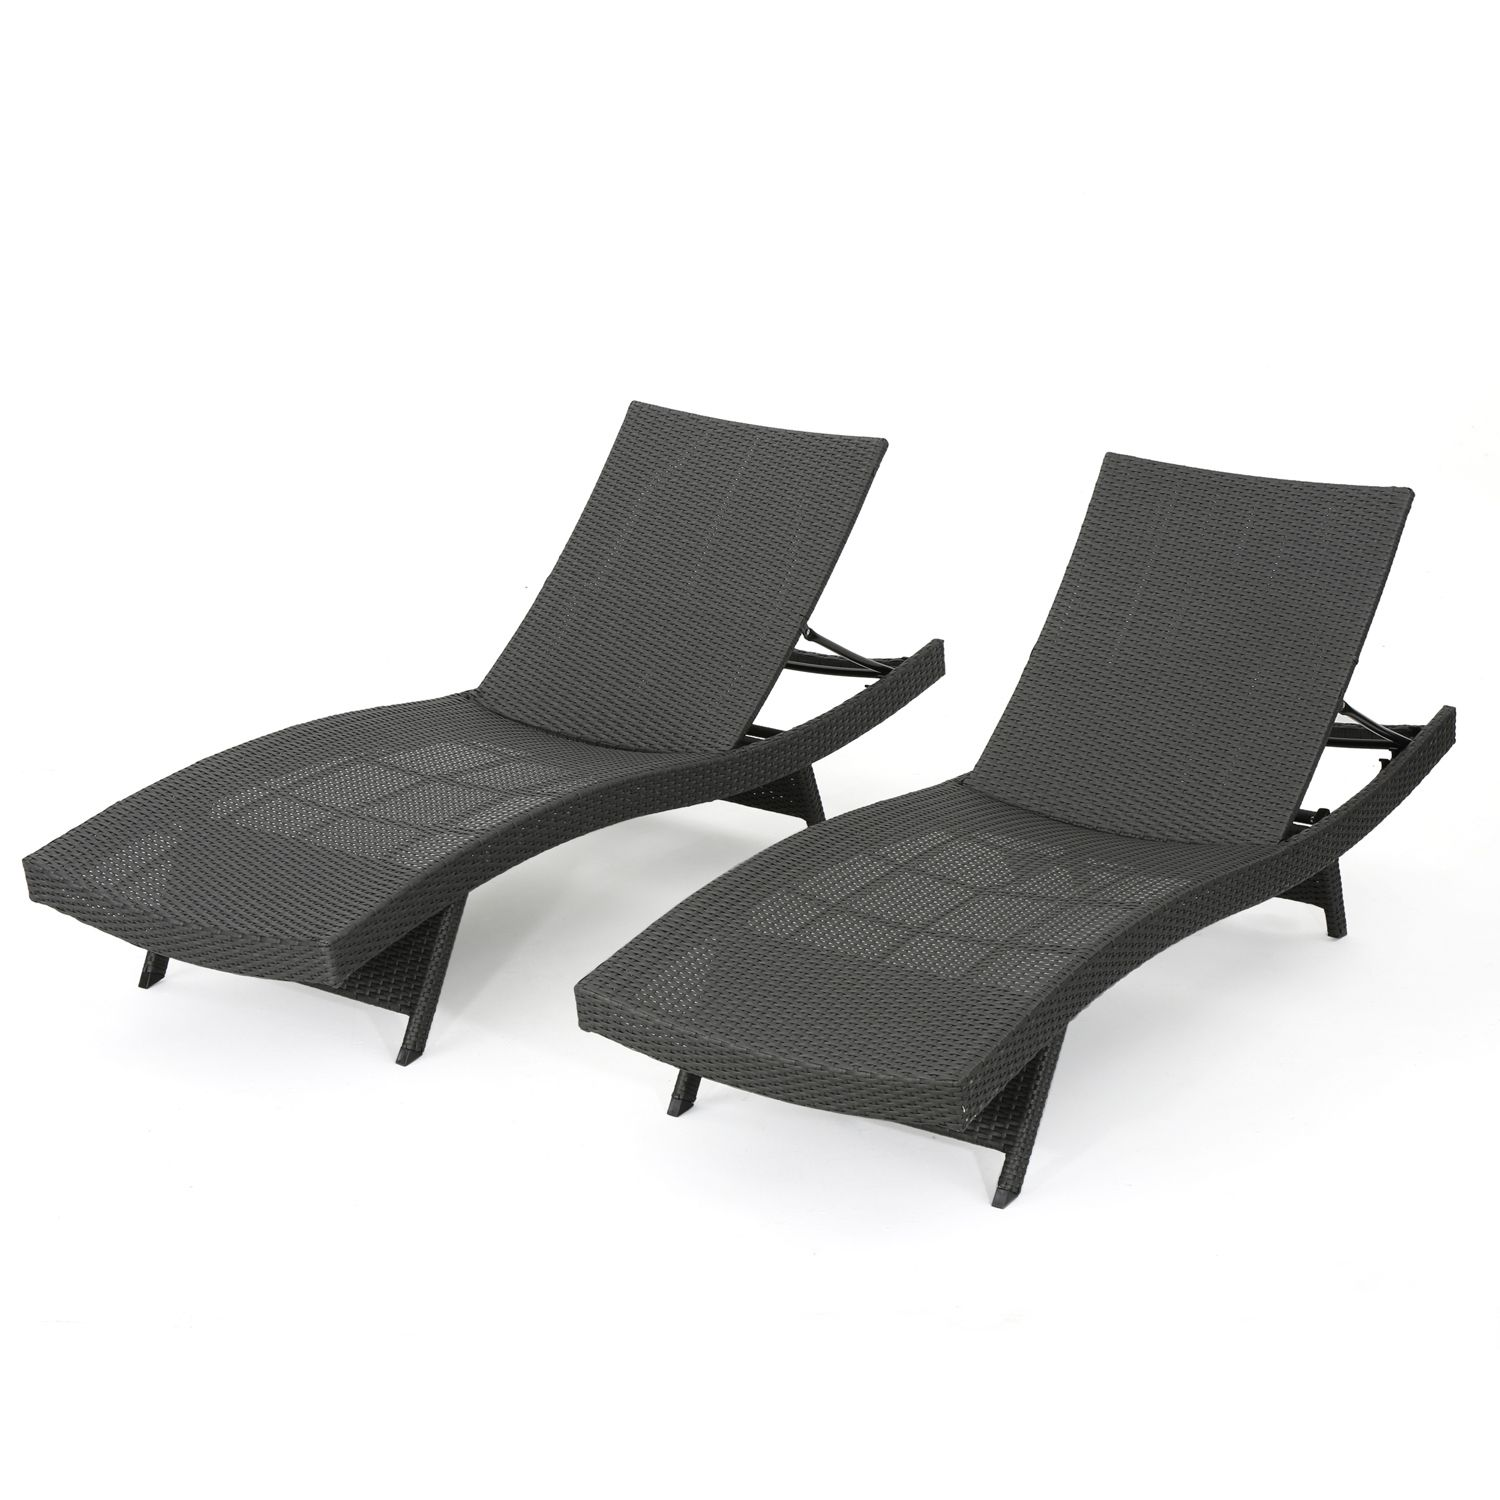 Fabulous Carlsbad Gray Wicker Chaise Lounge Chair Set Of 2 Products Pabps2019 Chair Design Images Pabps2019Com